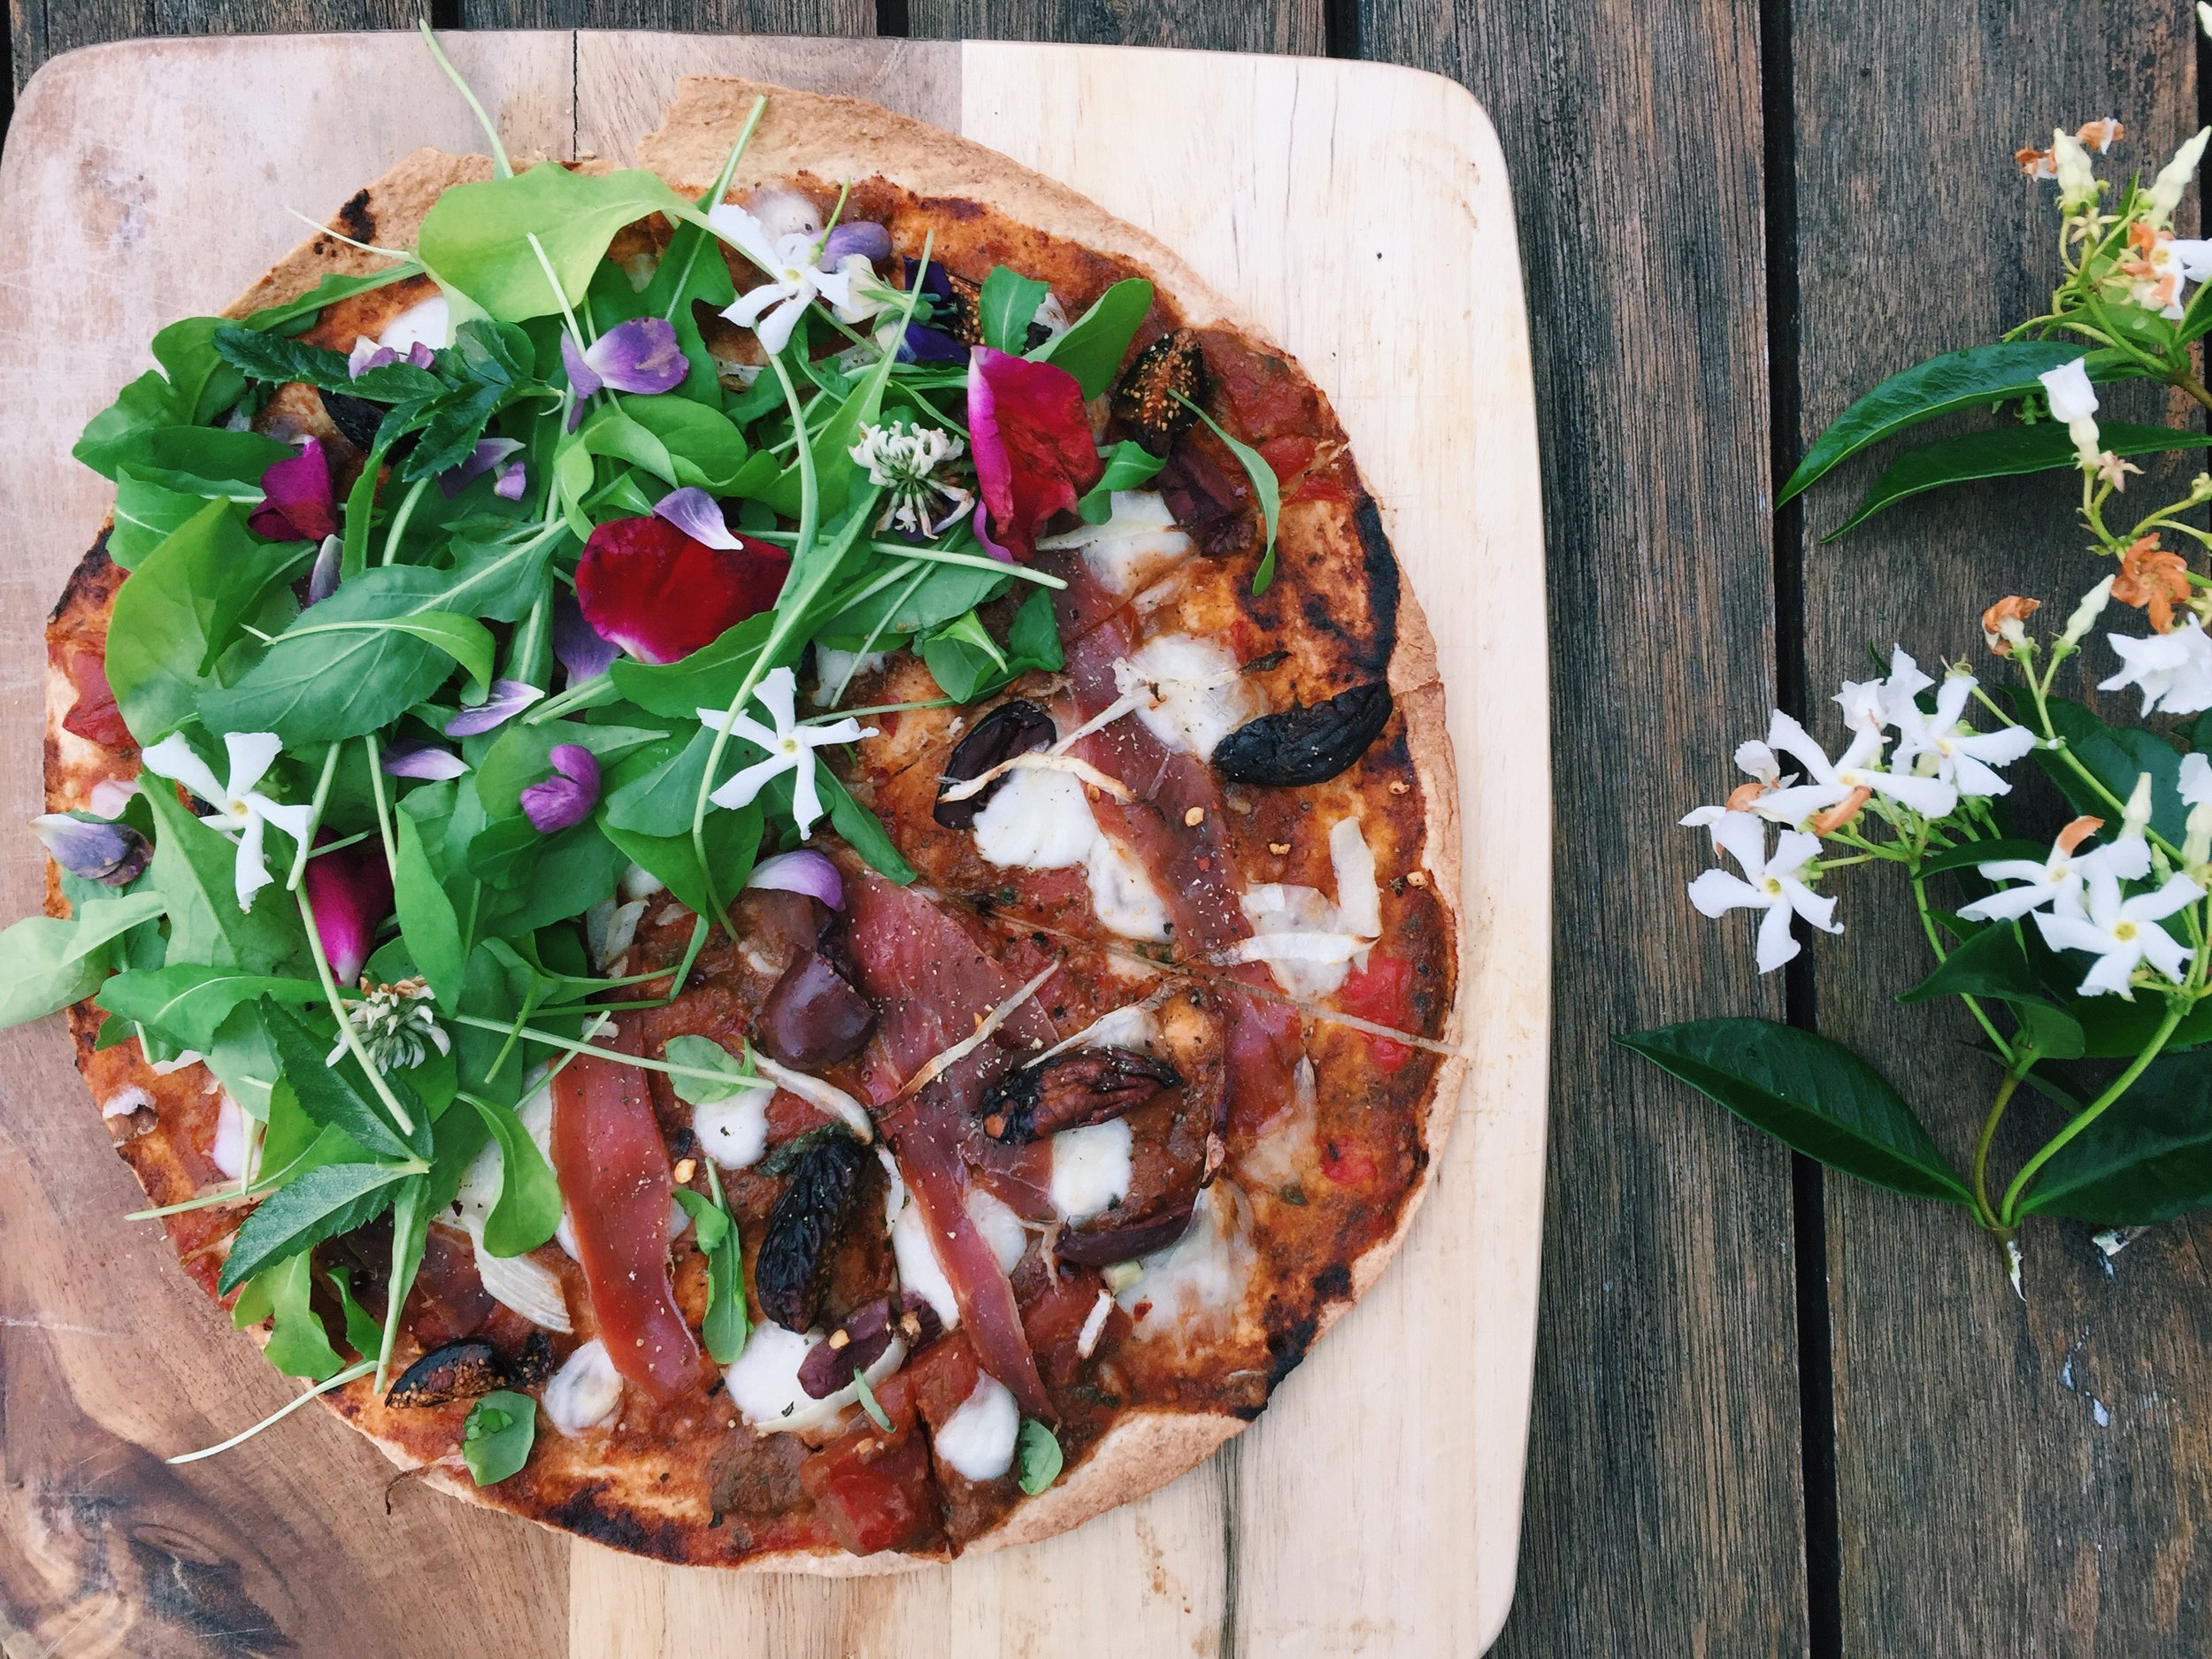 Sweet. Salty. Tangy. Spicy. All the ingredients for a perfect mate   (o  r your pizza). Add some flowers to the mix and you've got   a recipe for a night of some sweet, sweet lovin'.